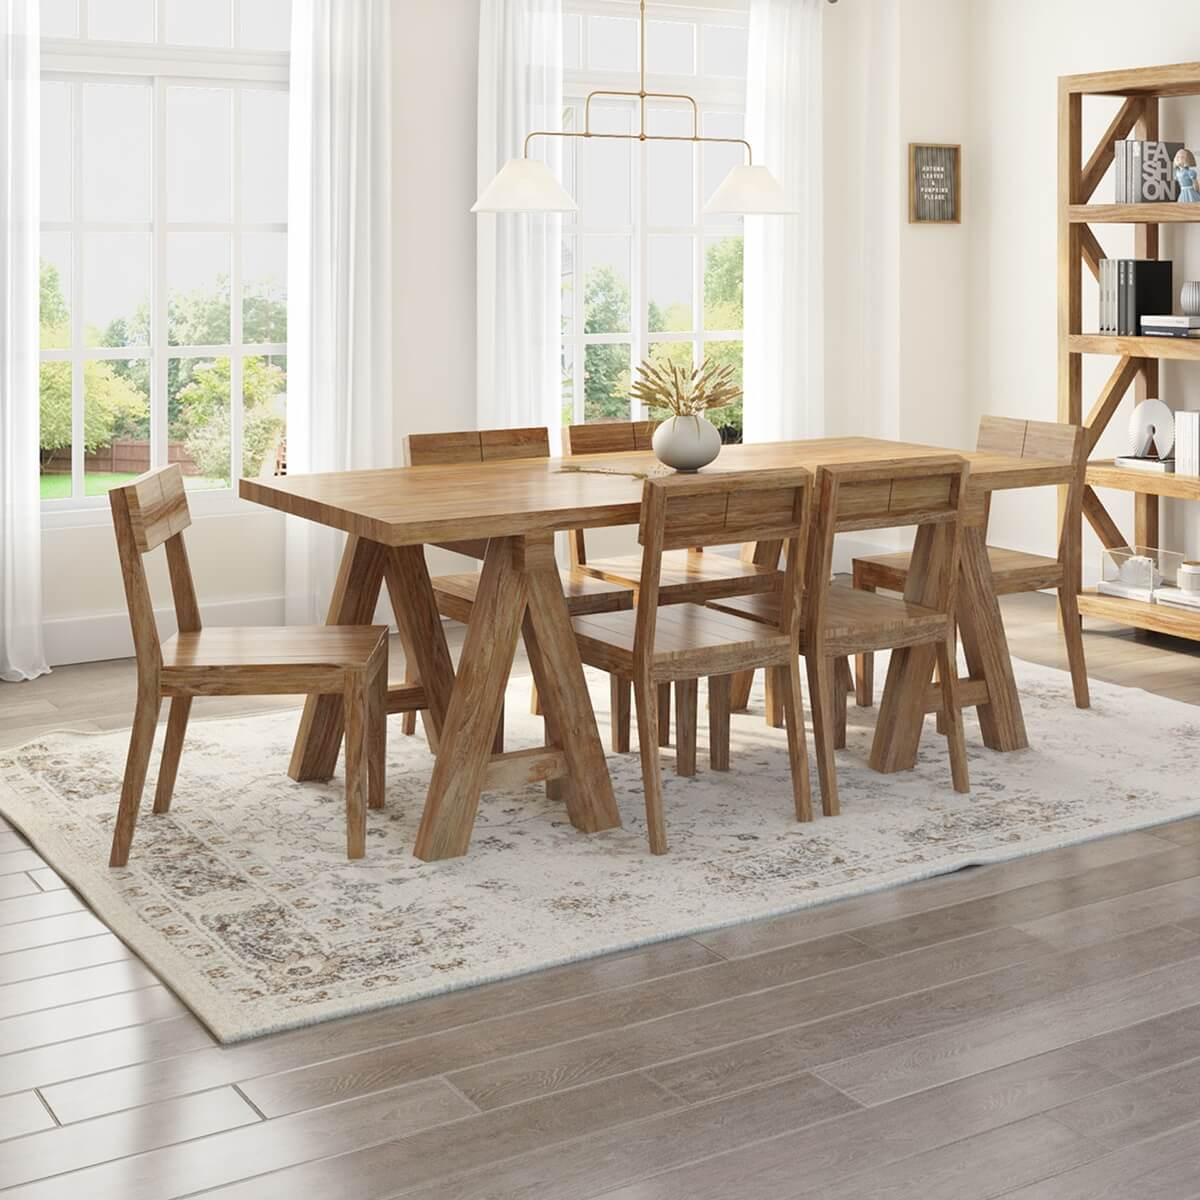 Fernie Rustic Solid Wood 7 Piece Dining Table & Chair Set